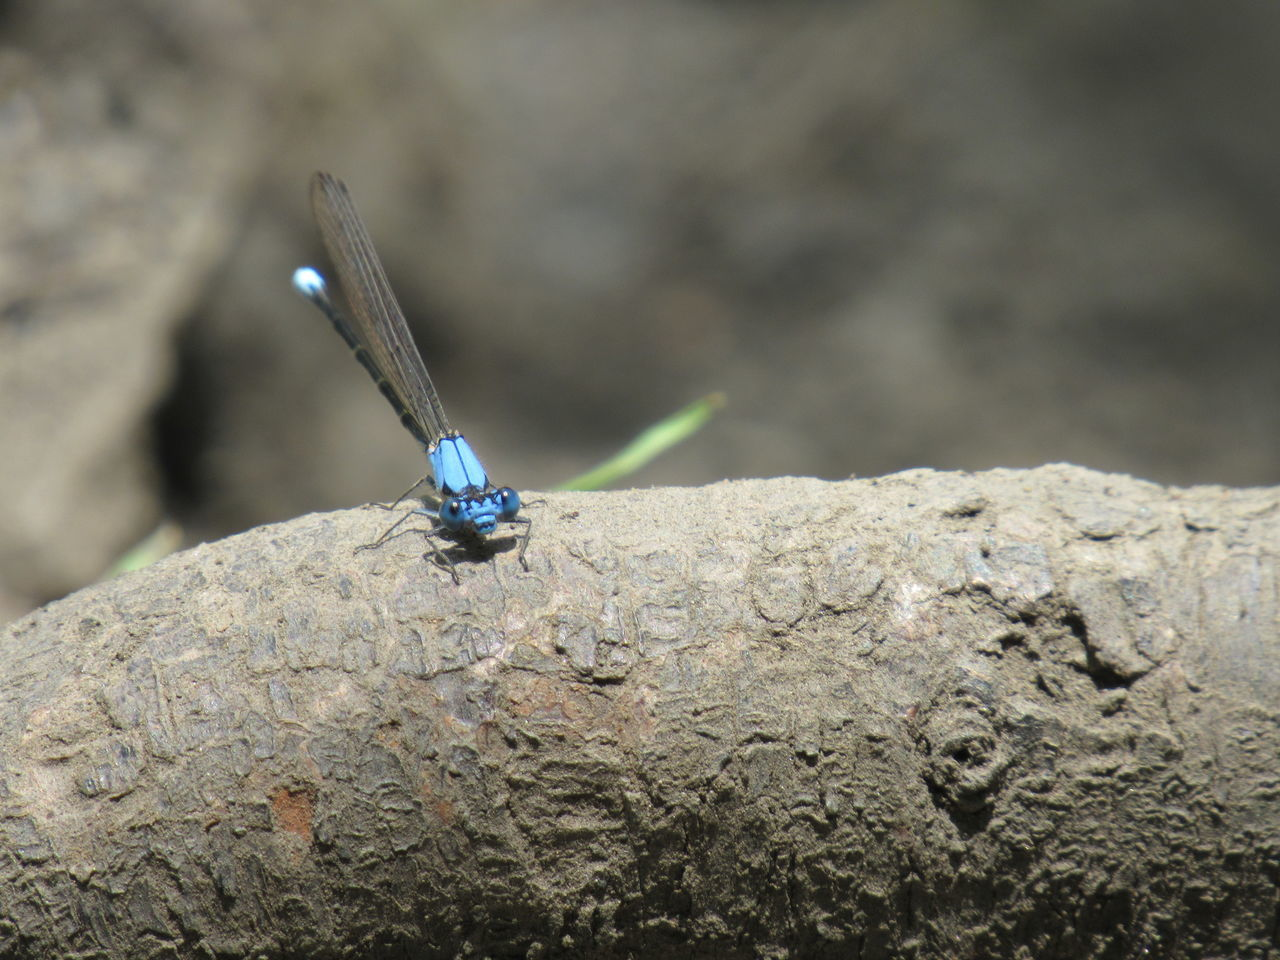 insect, one animal, focus on foreground, damselfly, rock - object, animal themes, animal wildlife, close-up, no people, animals in the wild, outdoors, day, nature